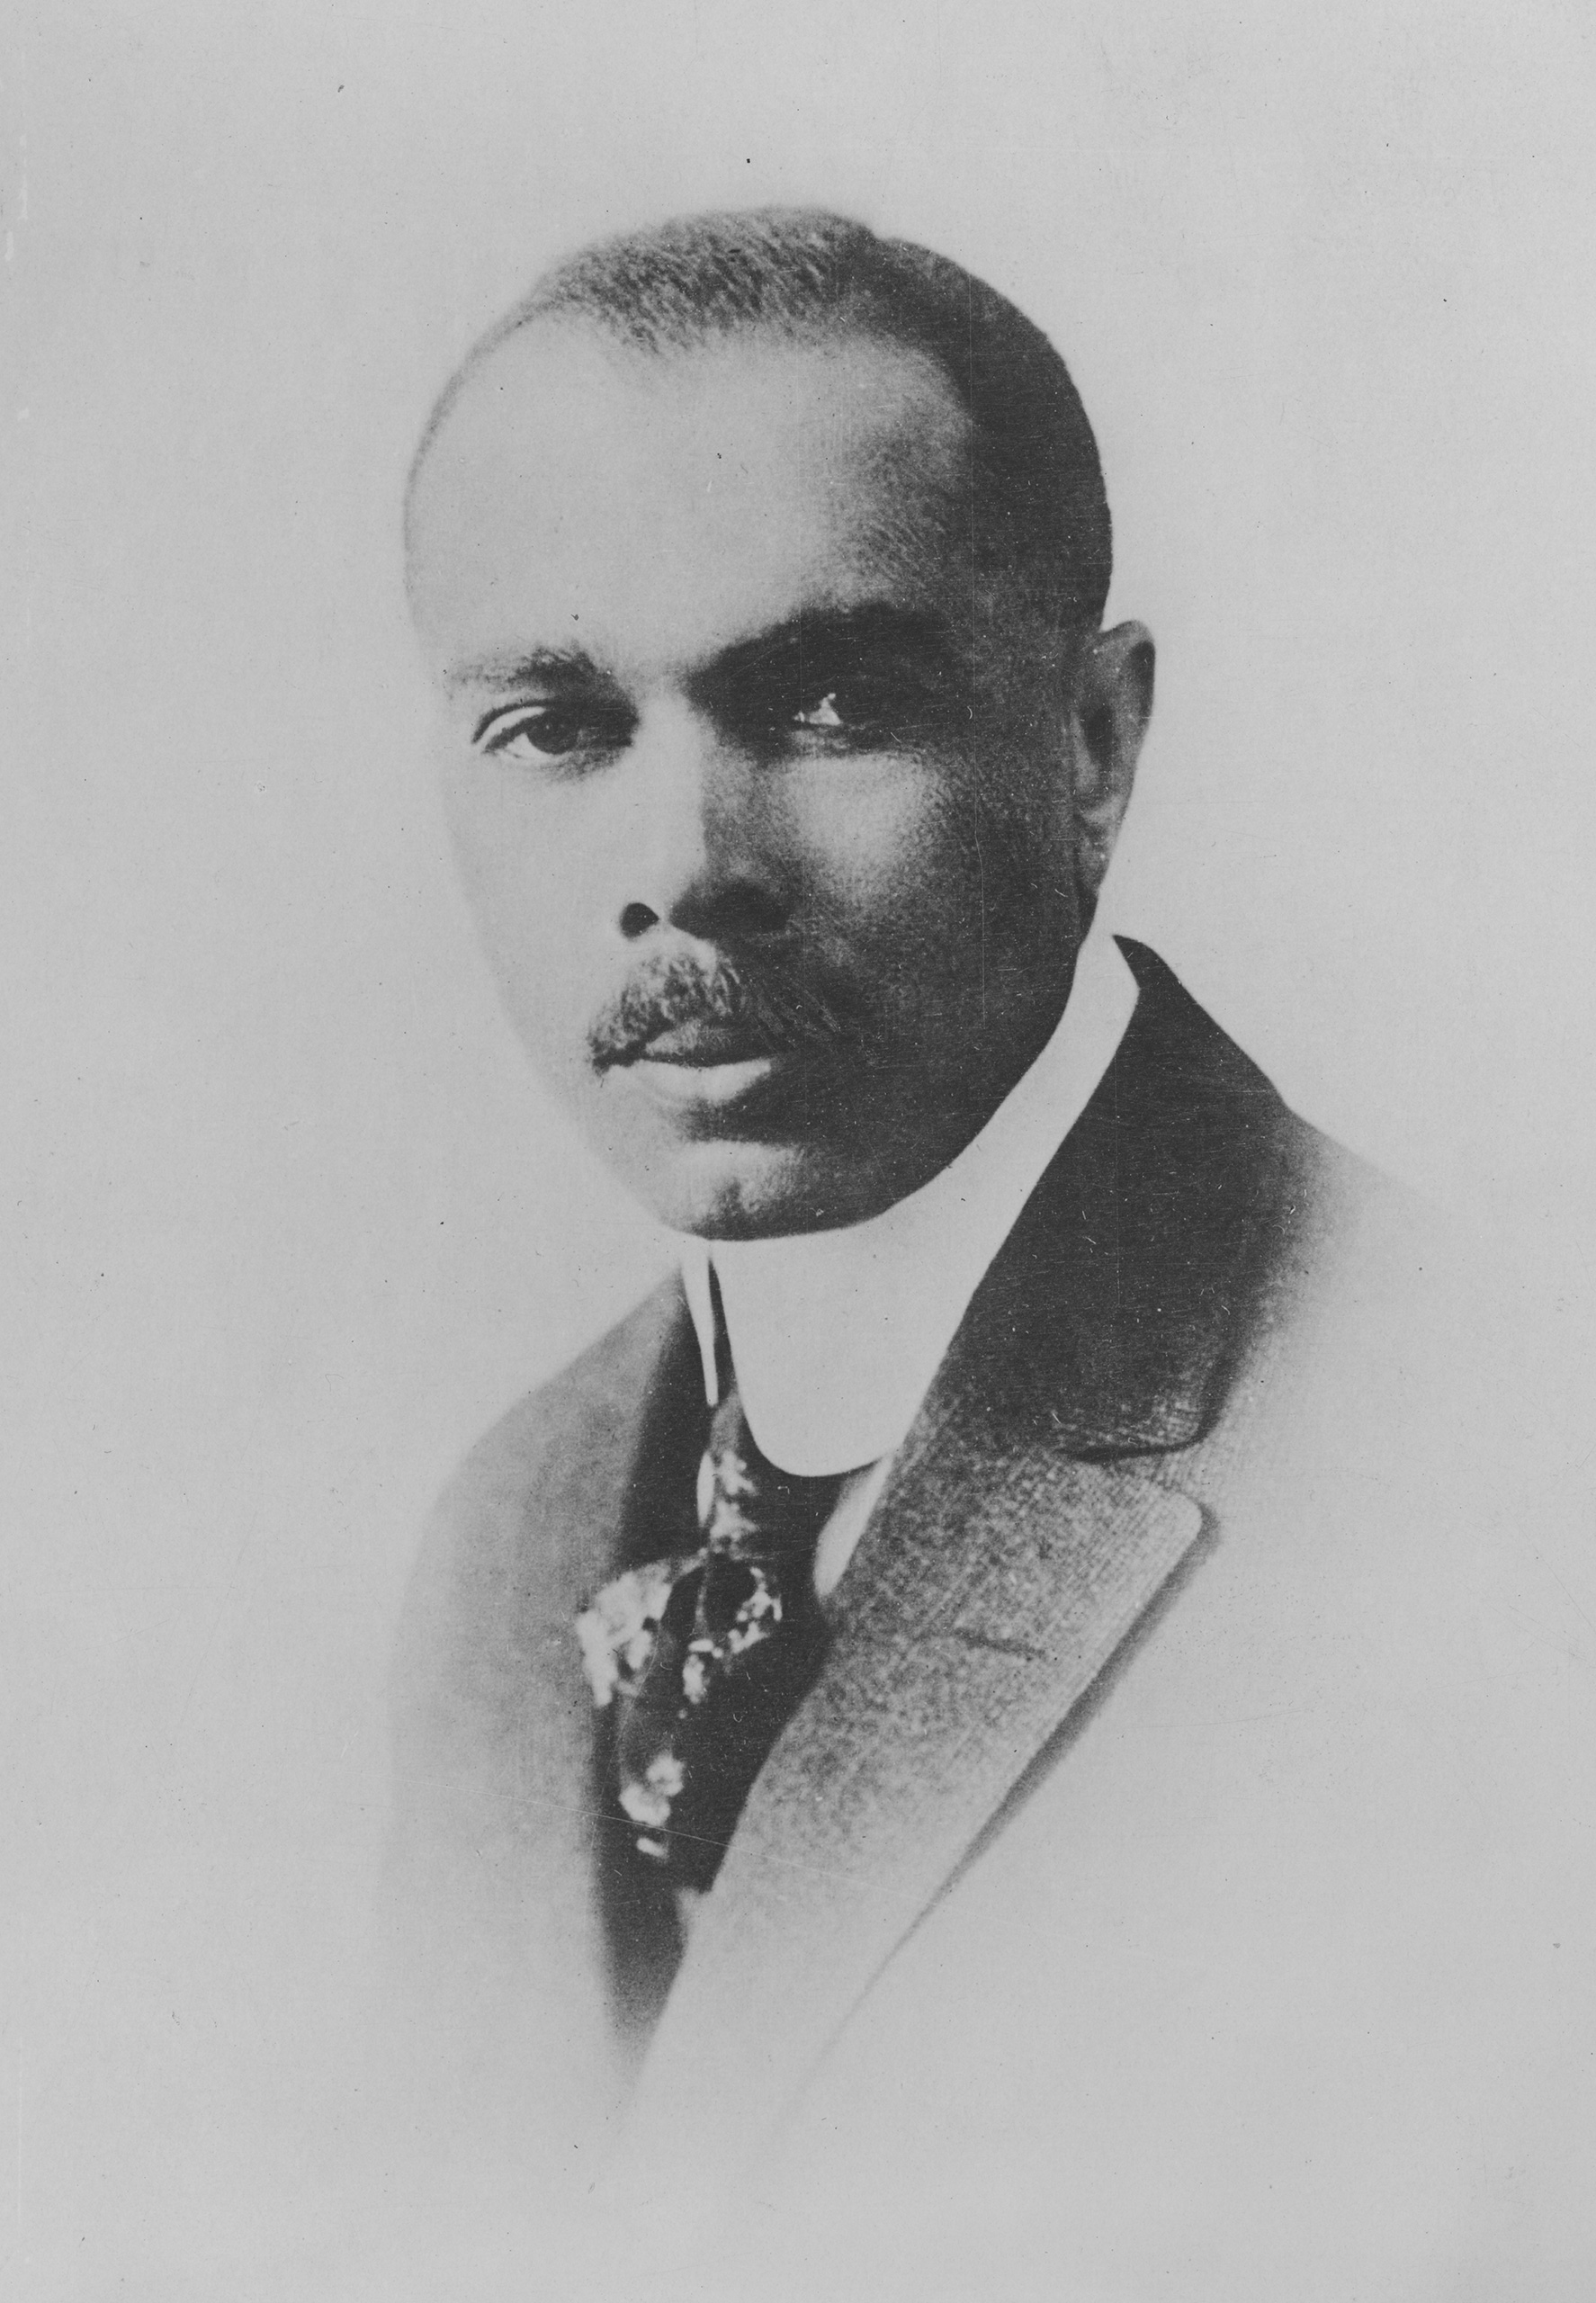 A portrait of American author, politician, diplomat, critic, journalist, poet, anthologist, educator, lawyer, songwriter, and early civil rights activist James Weldon Johnson, circa 1925.